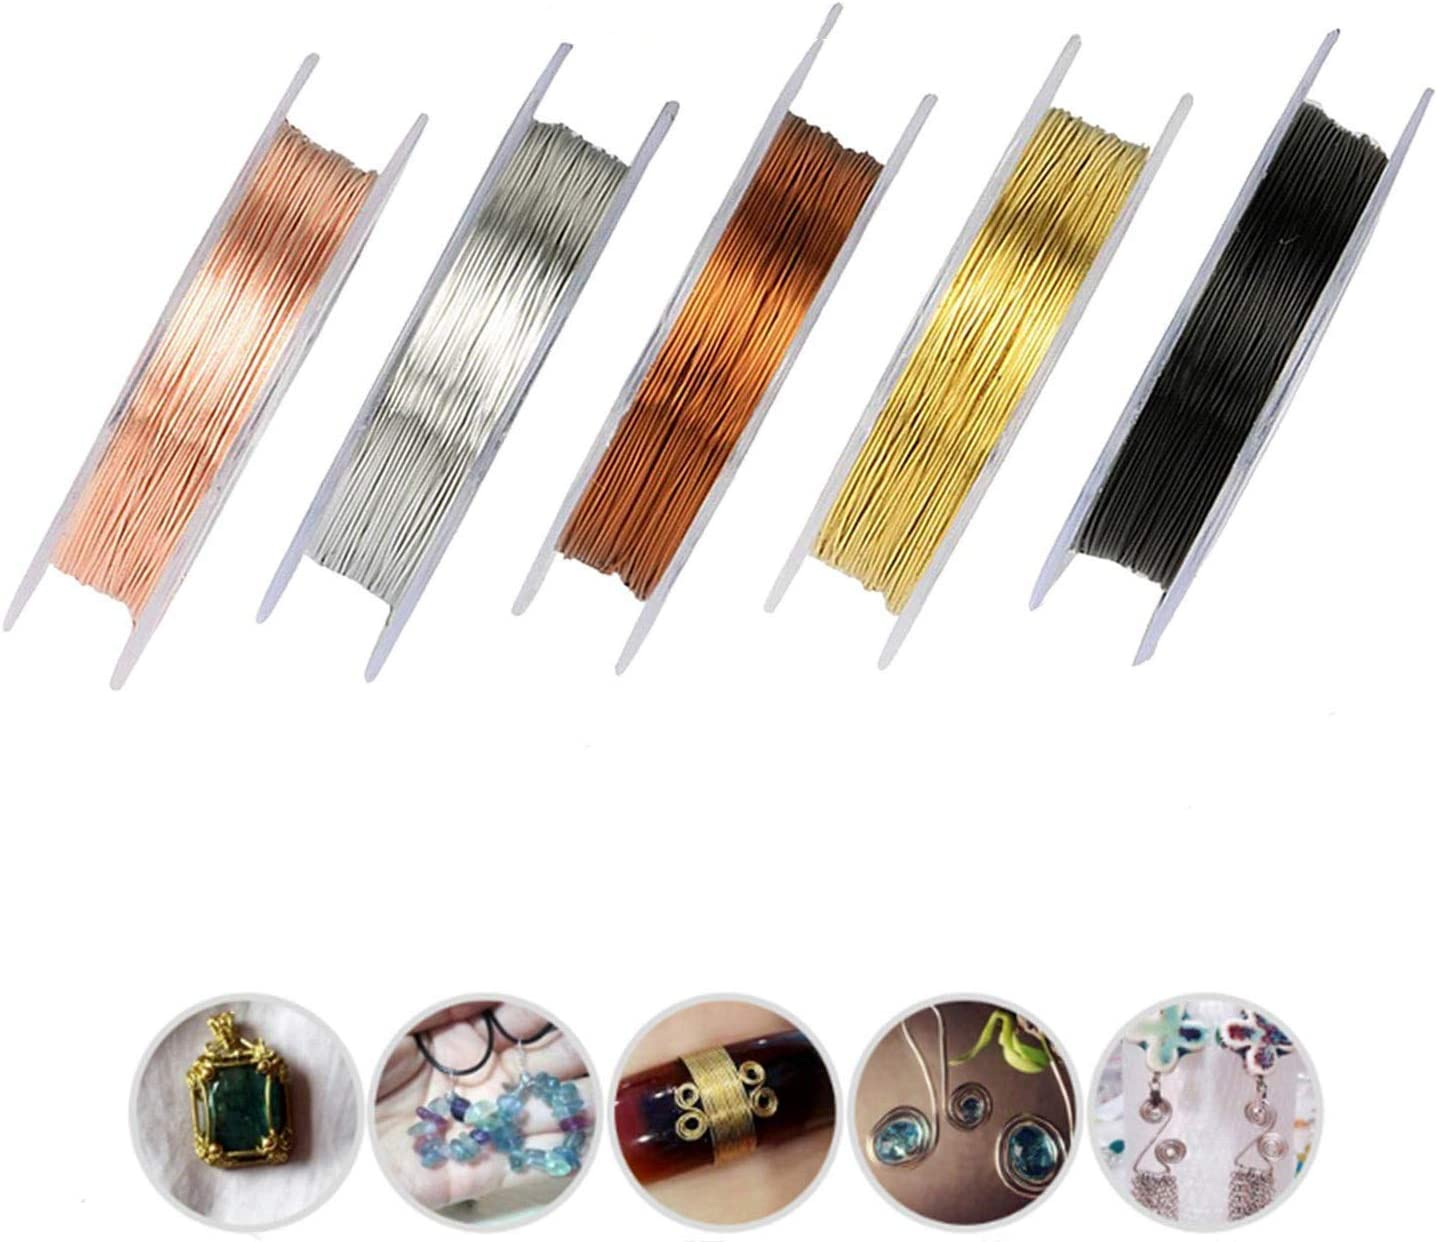 Libershine 6 Pack Jewelry Wire Craft Wire 26 Gauge Tarnish Resistant Jewelry Beading Wire for Jewelry Making Supplies and Crafting Silver, Gold and Rose Gold